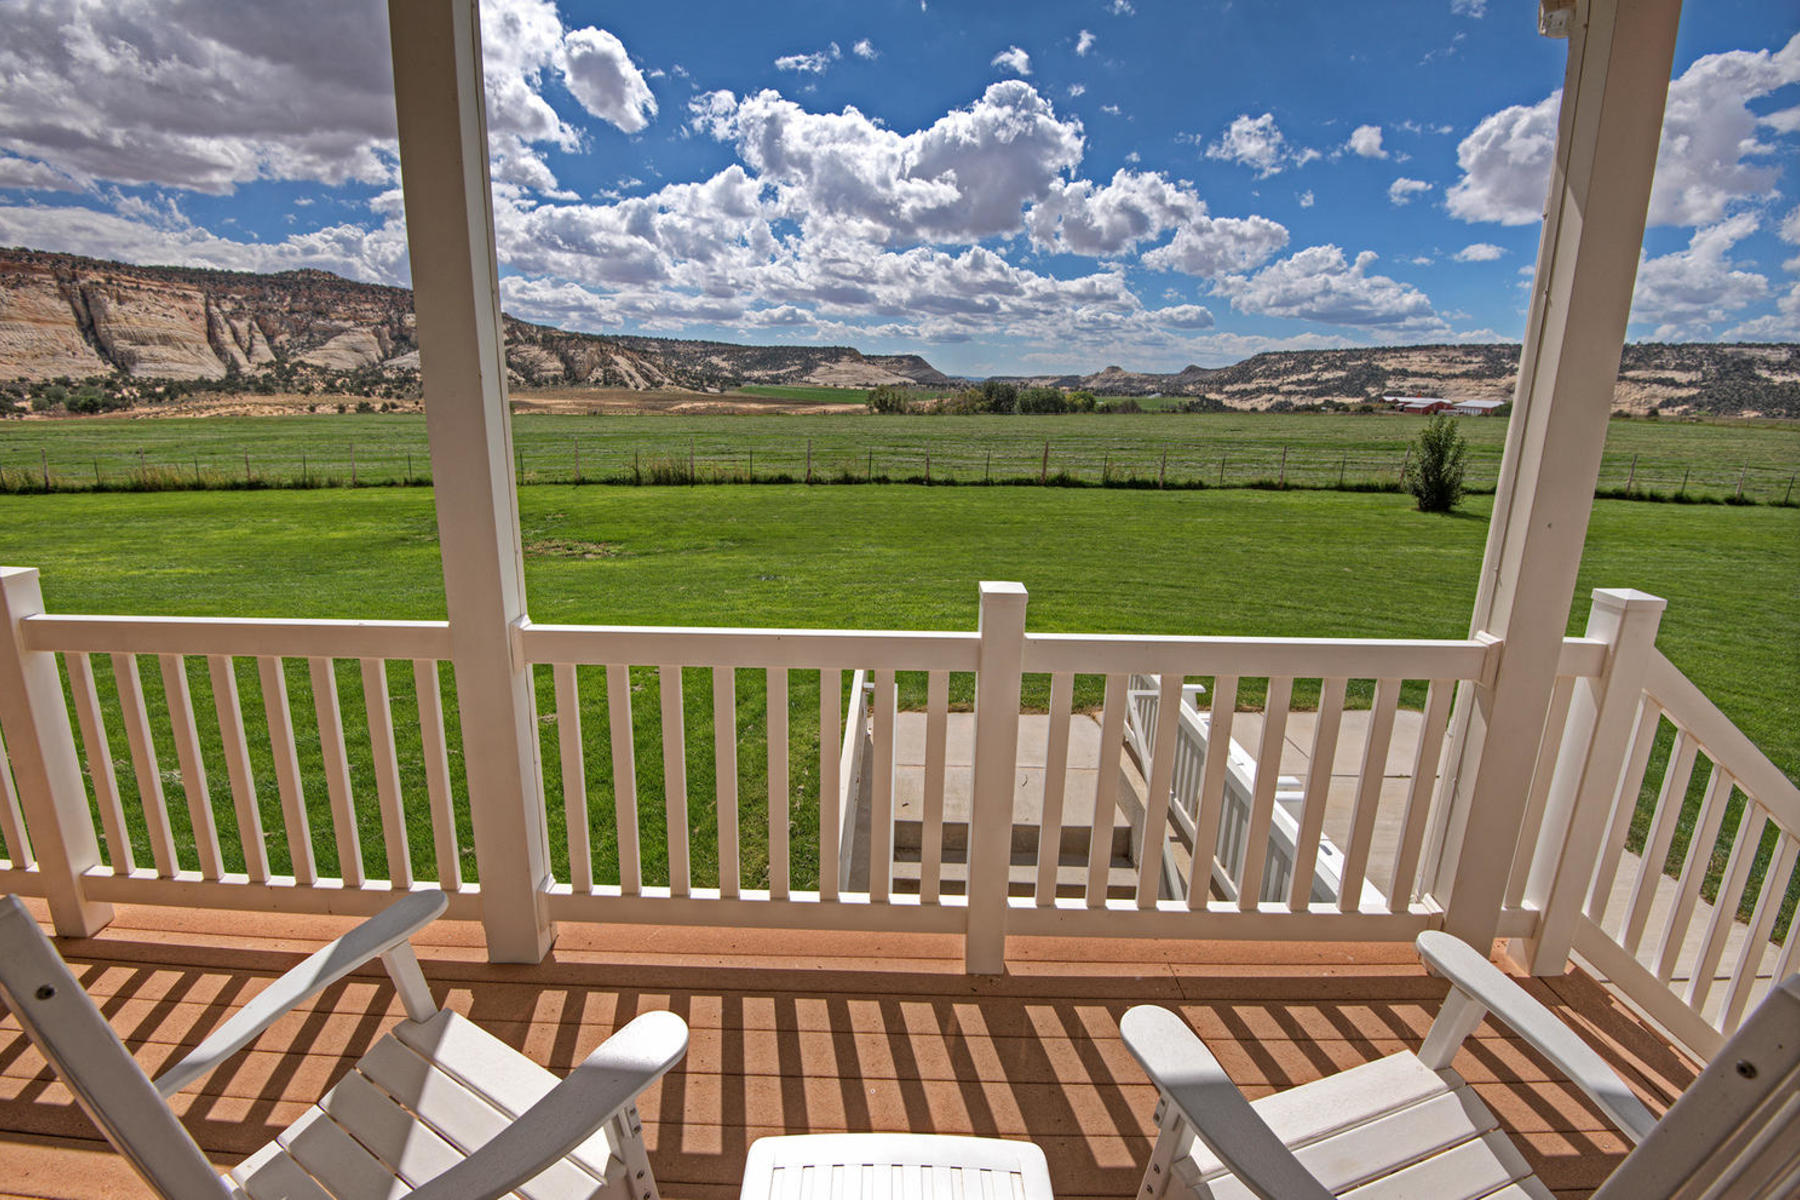 Additional photo for property listing at An Intensely Private & Deeply Inspirational One of a Kind Ranch - Land Holding 2405 Lower Boulder Rd Boulder, Utah 84716 United States